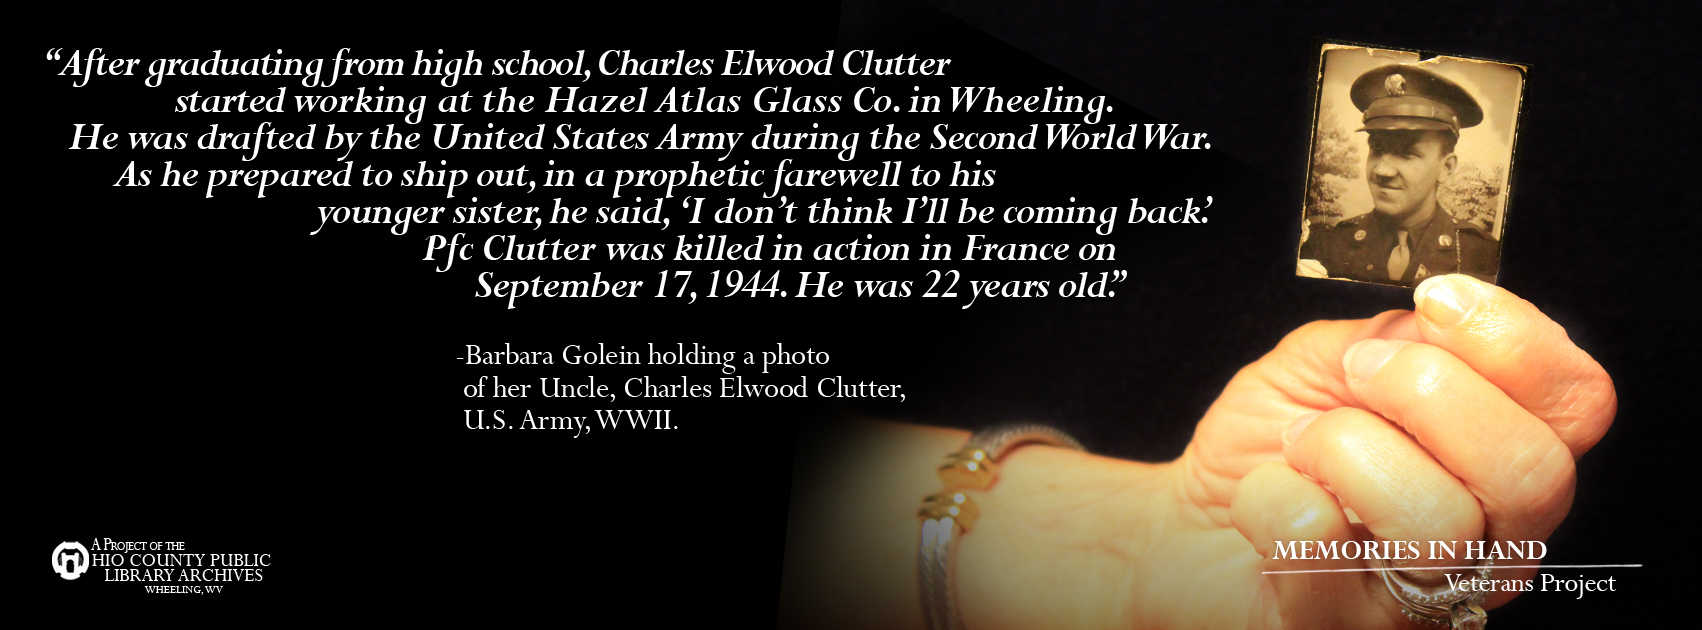 Charles Elwood Clutter, US Army, WWII